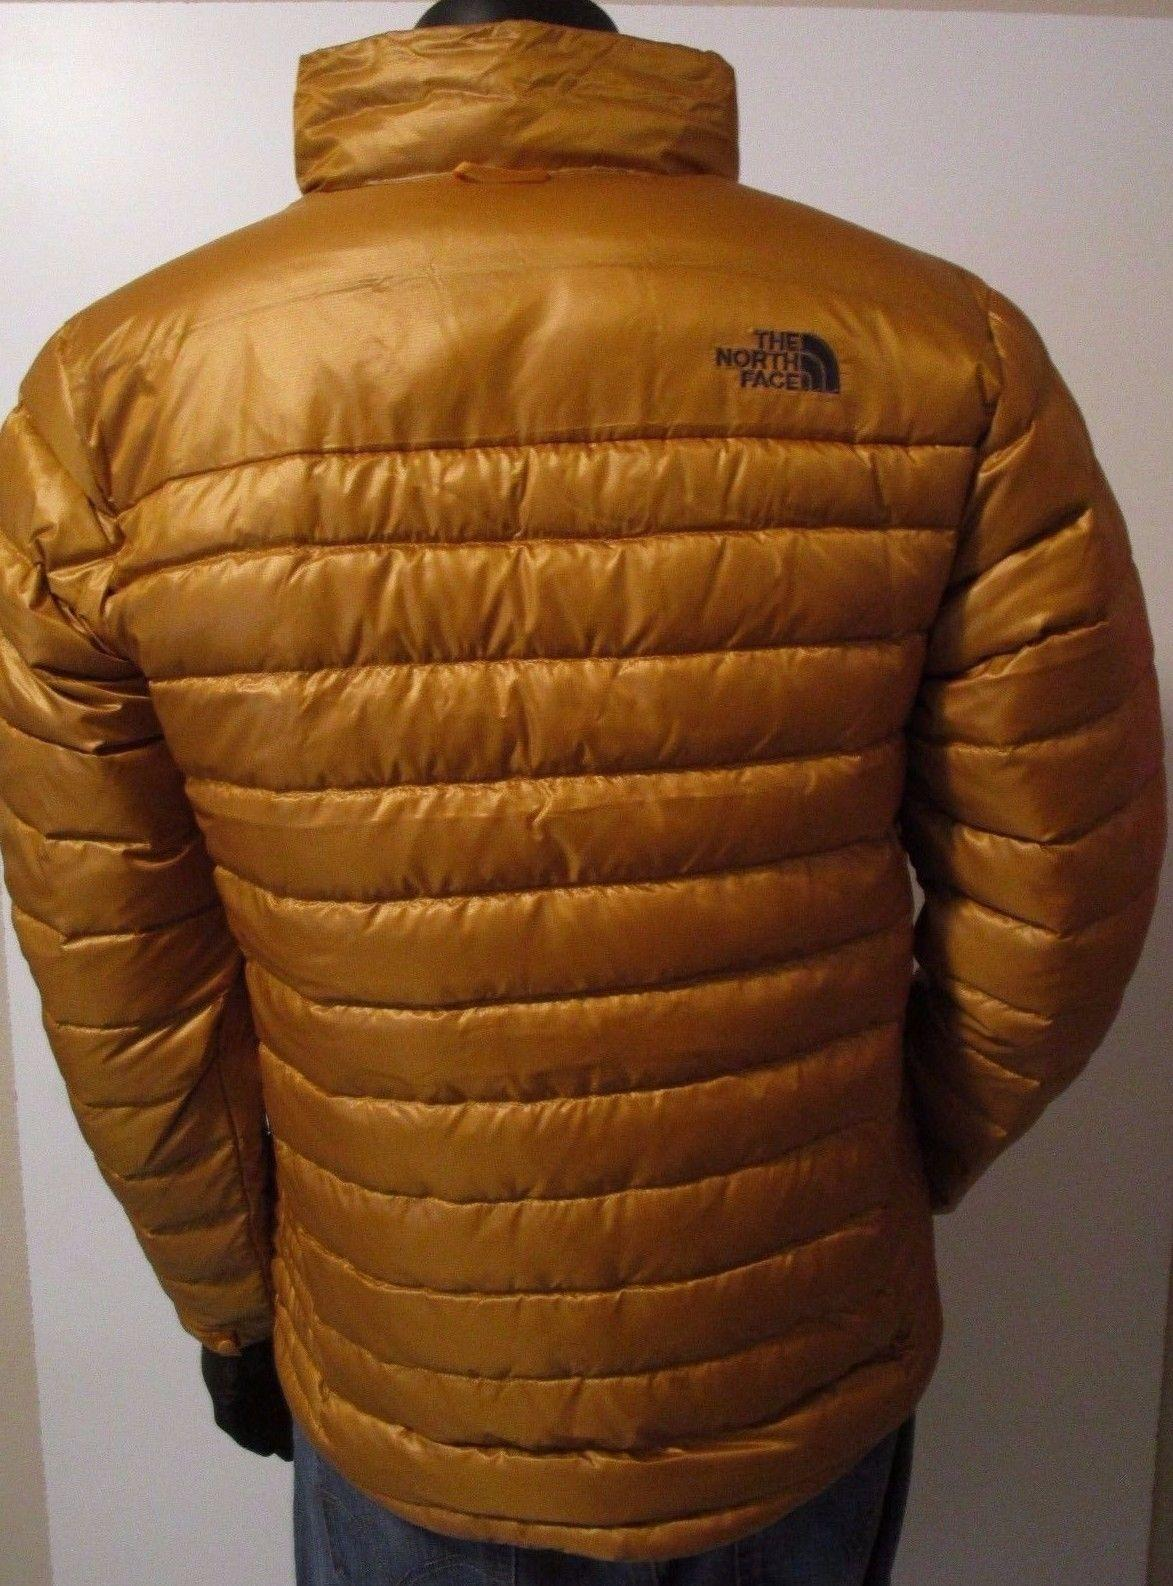 006e3a30381 Fz Mens Flare Citrine Down The North Yellow Face 550 Insulated wBqSSI1zx